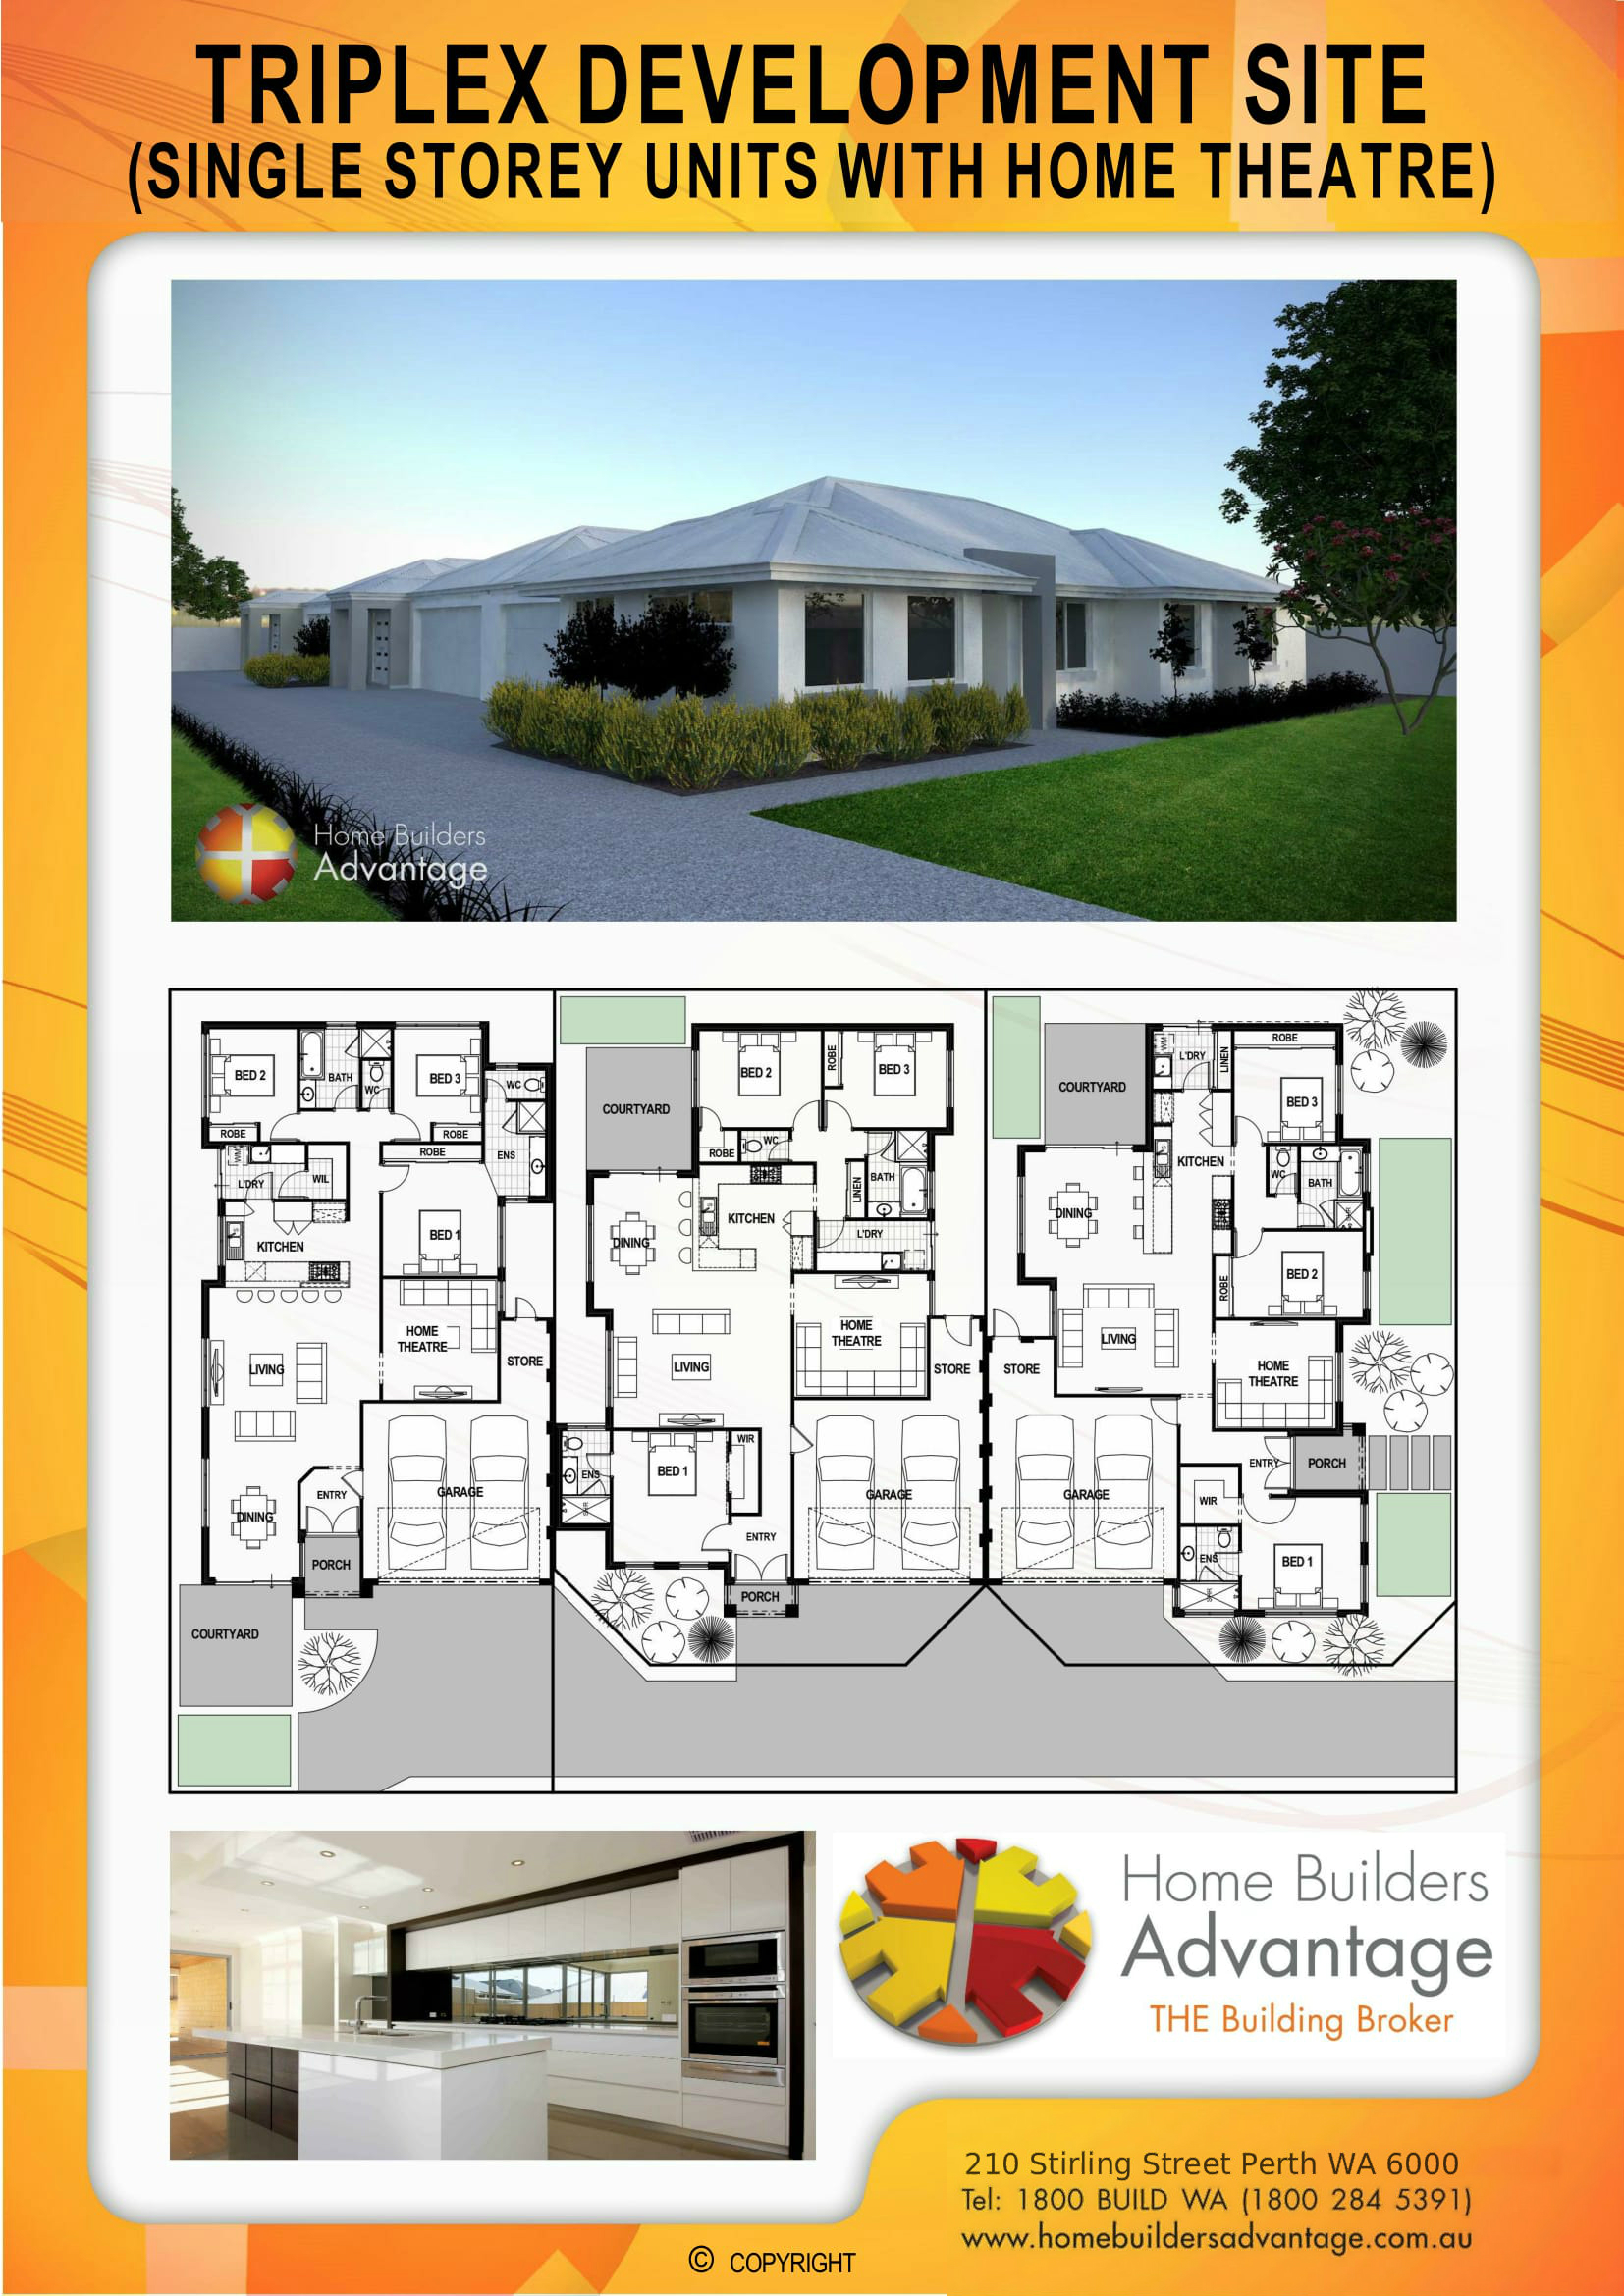 Triplex Development Site (Single Storey Units With Home Theatre) Home Buildes Advantage Perth The Building Broker Floor Plan